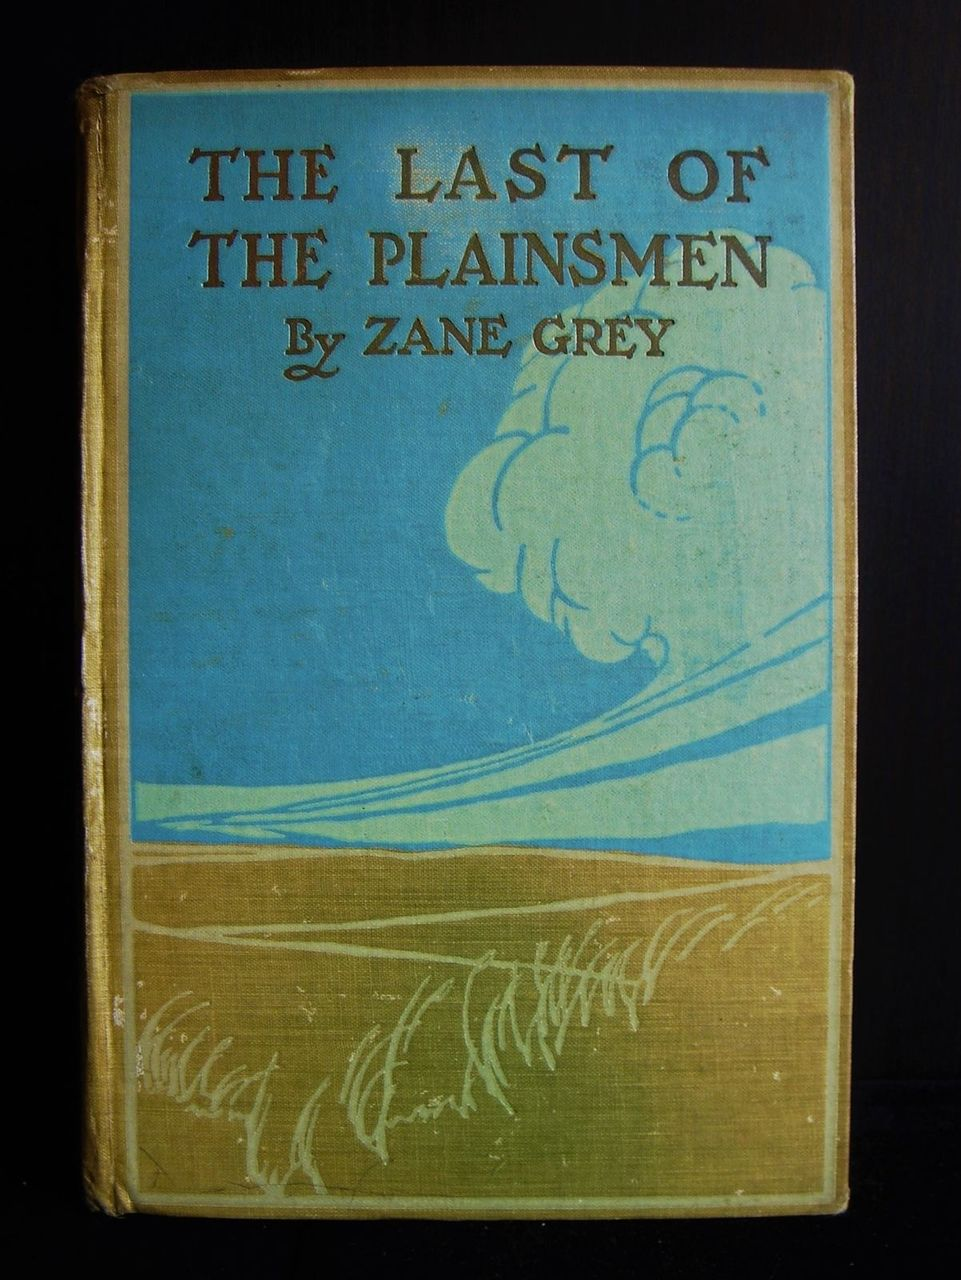 THE LAST OF THE PLAINSMEN, by Zane Grey - 1908 [Unique Signed 1st Ed]